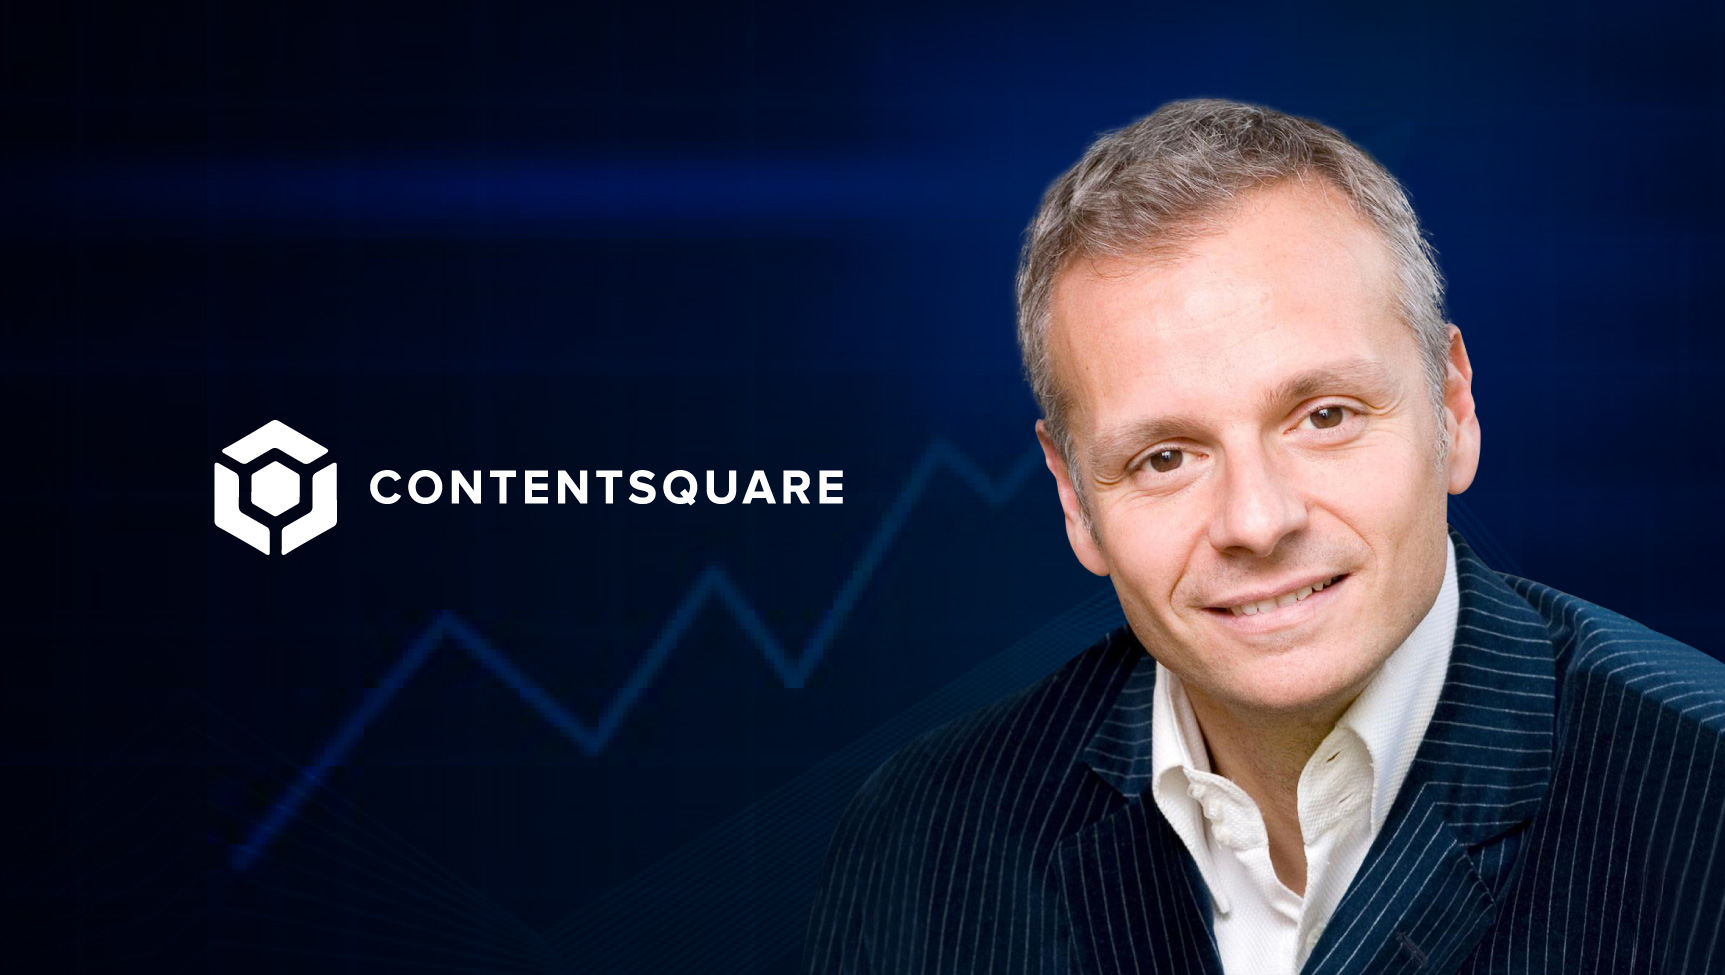 SalesTech Interview with Jean-Marc Bellaiche, Chief Strategy & Partnership Officer at Contentsquare